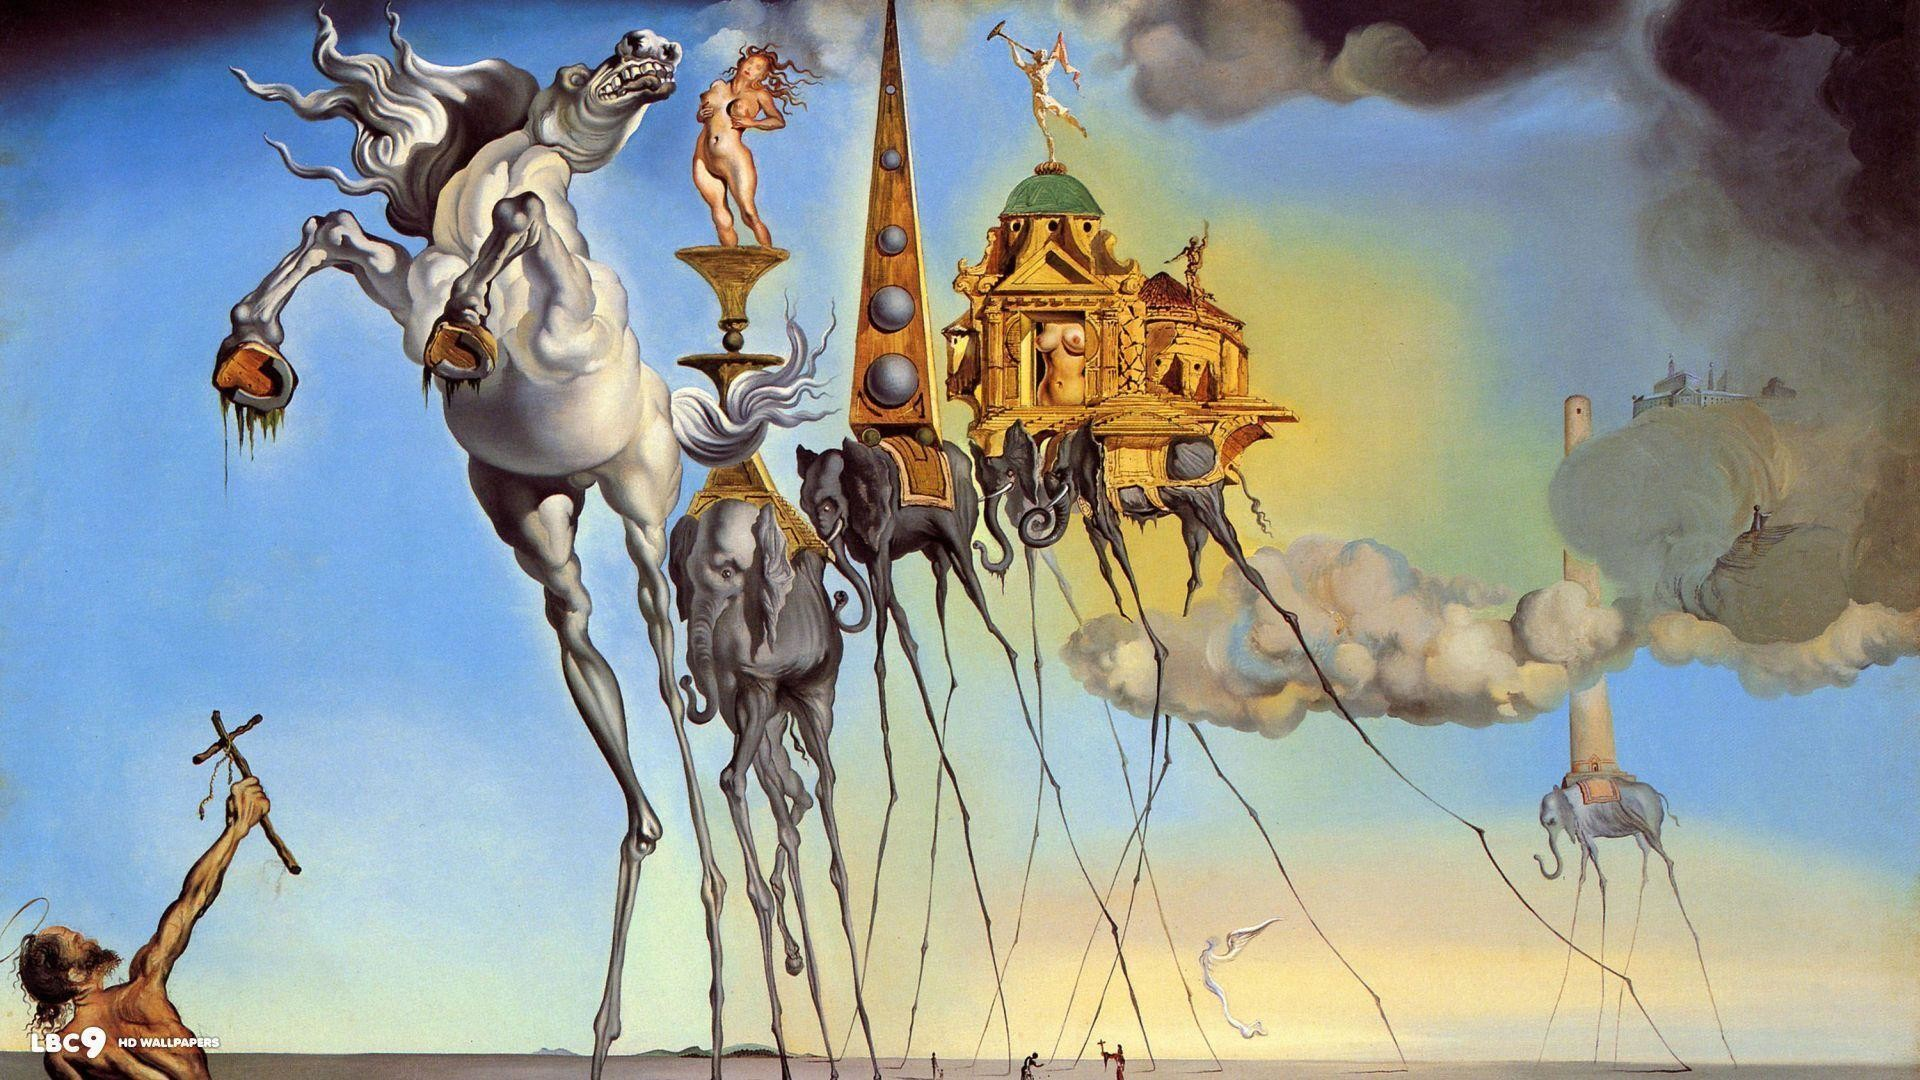 1920x1080 salvador dali wallpaper 36/38 | paintings hd backgrounds